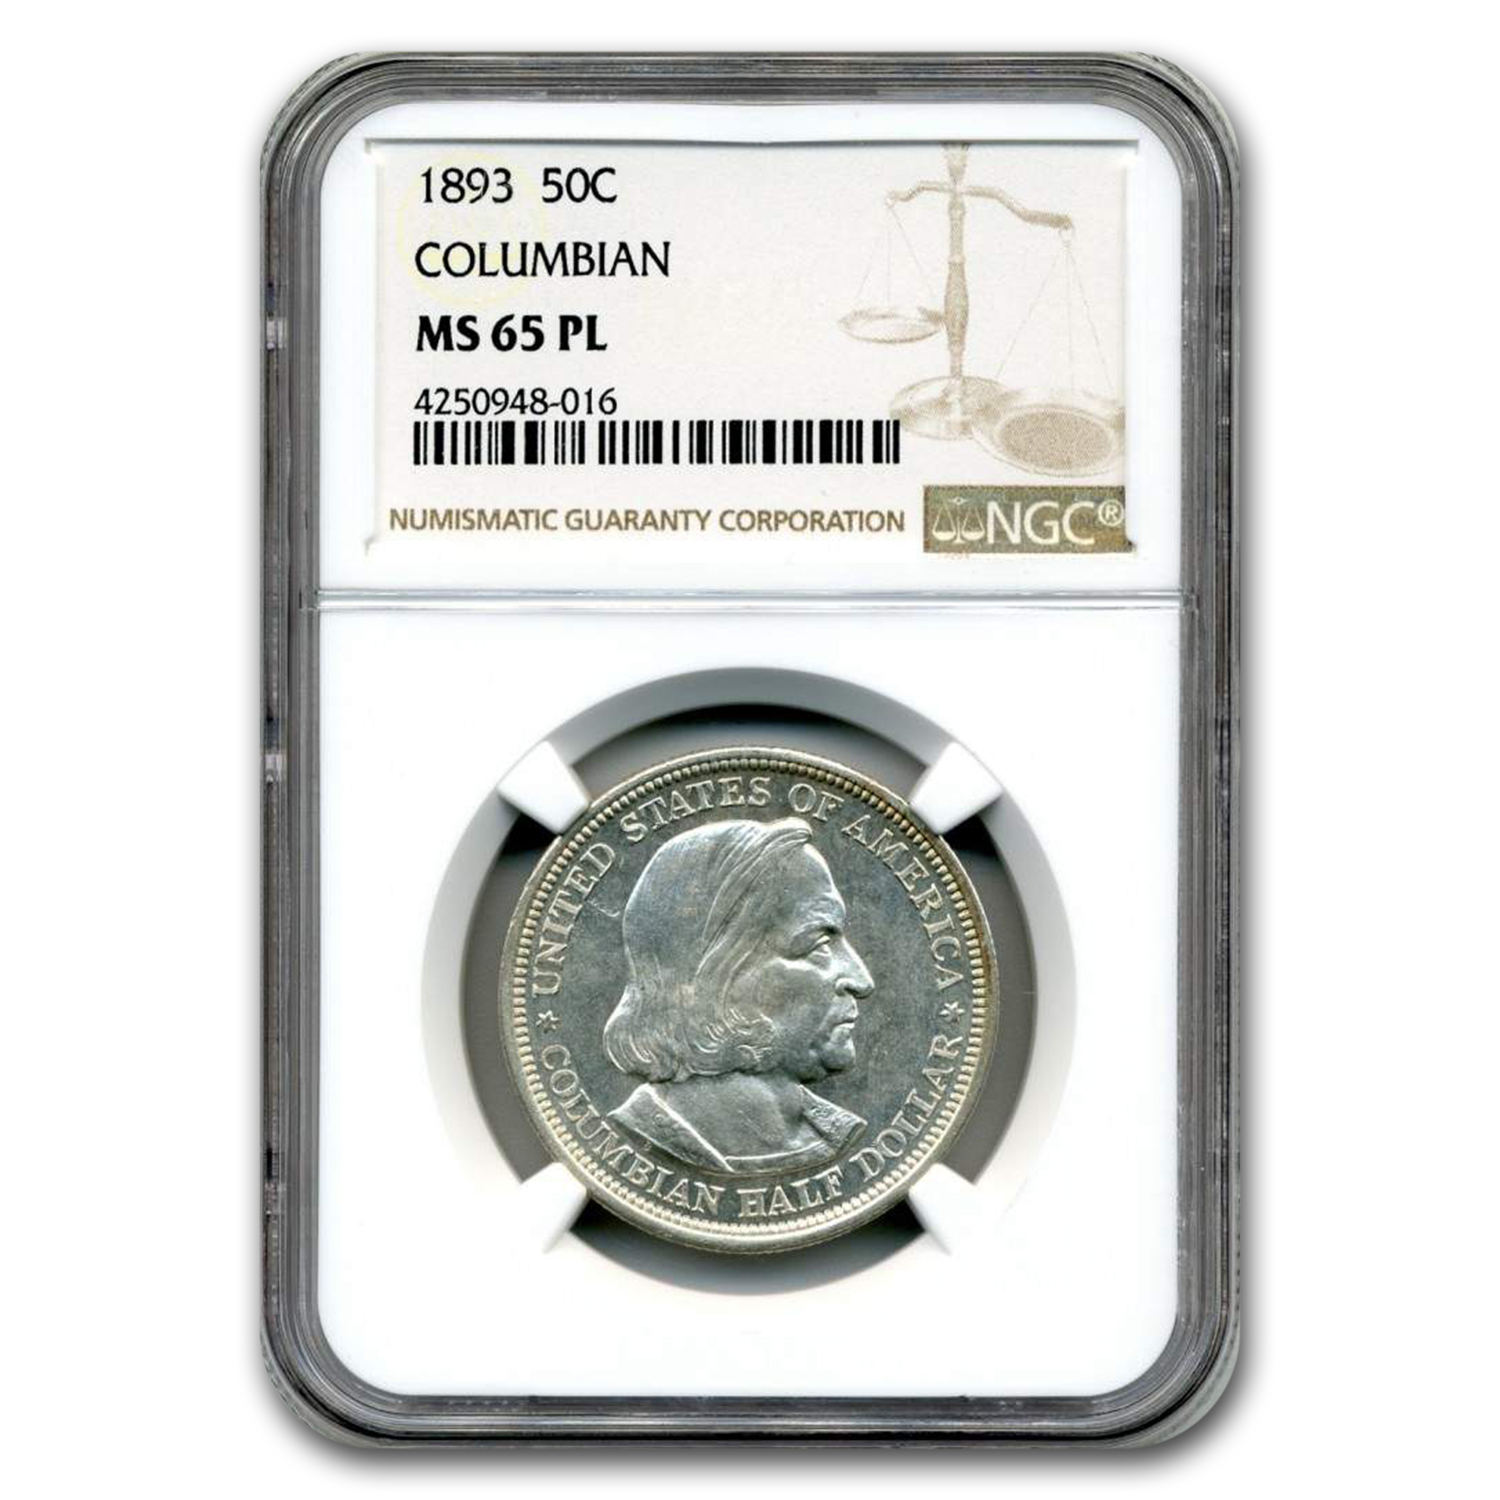 1893 Columbian Expo Half Dollar MS-63 PL NGC